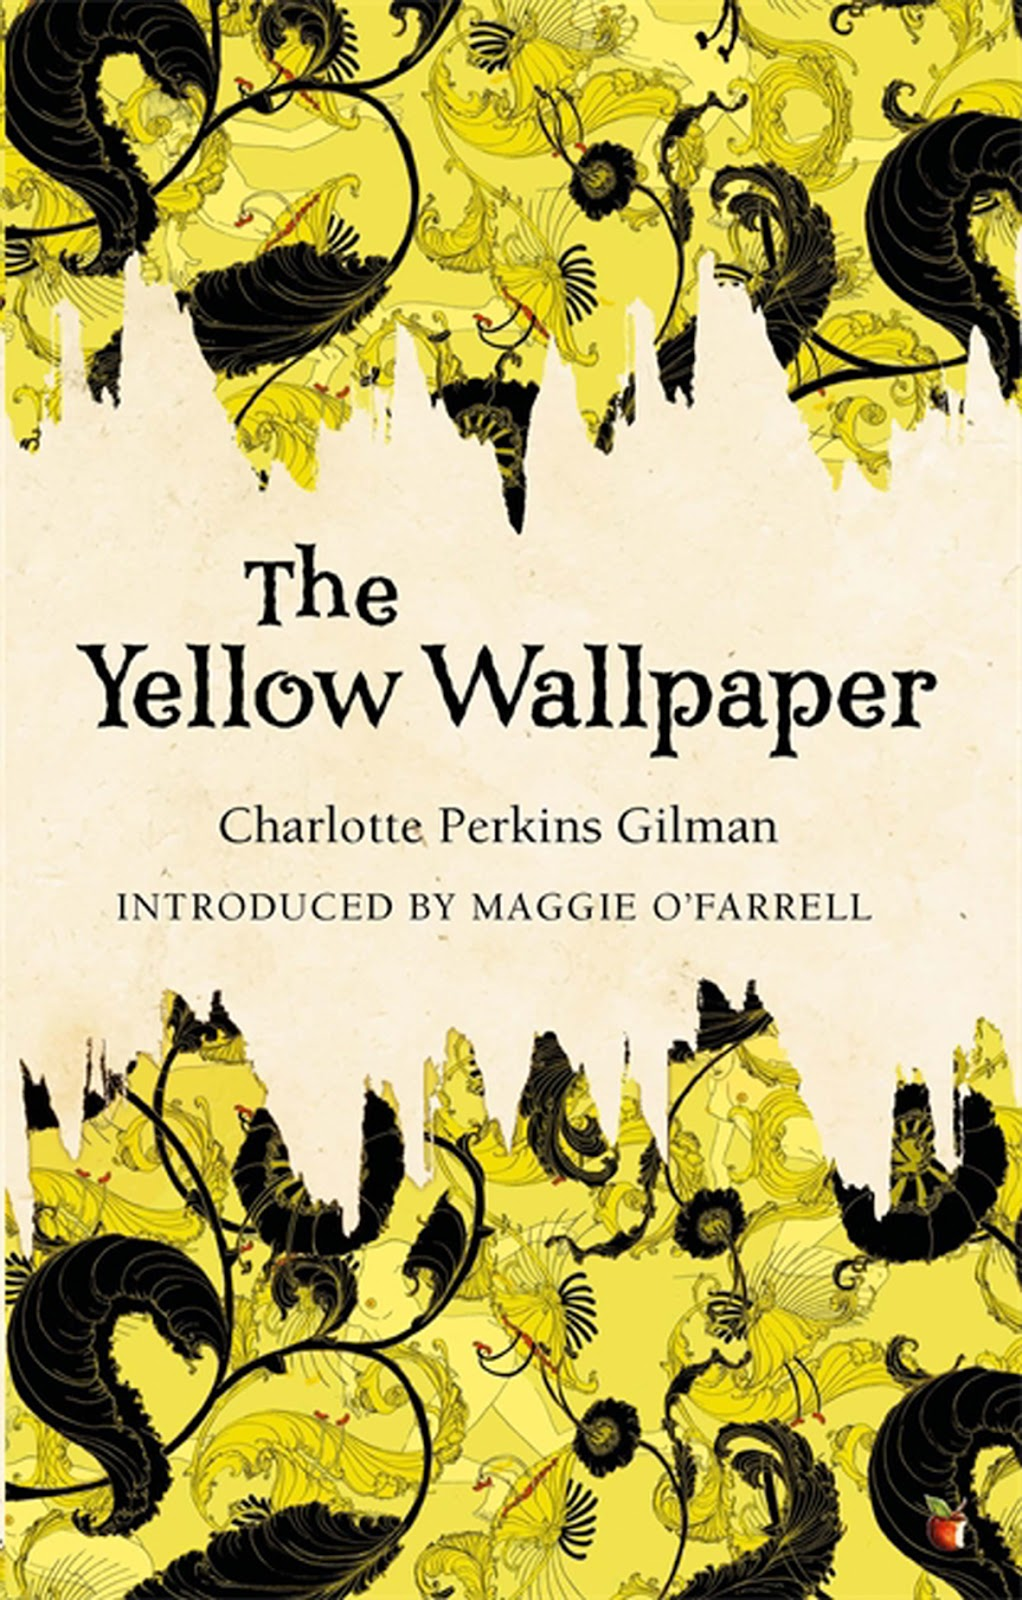 A Critical Analysis Of Charlotte Perkins Gilmans The Yellow Wallpaper